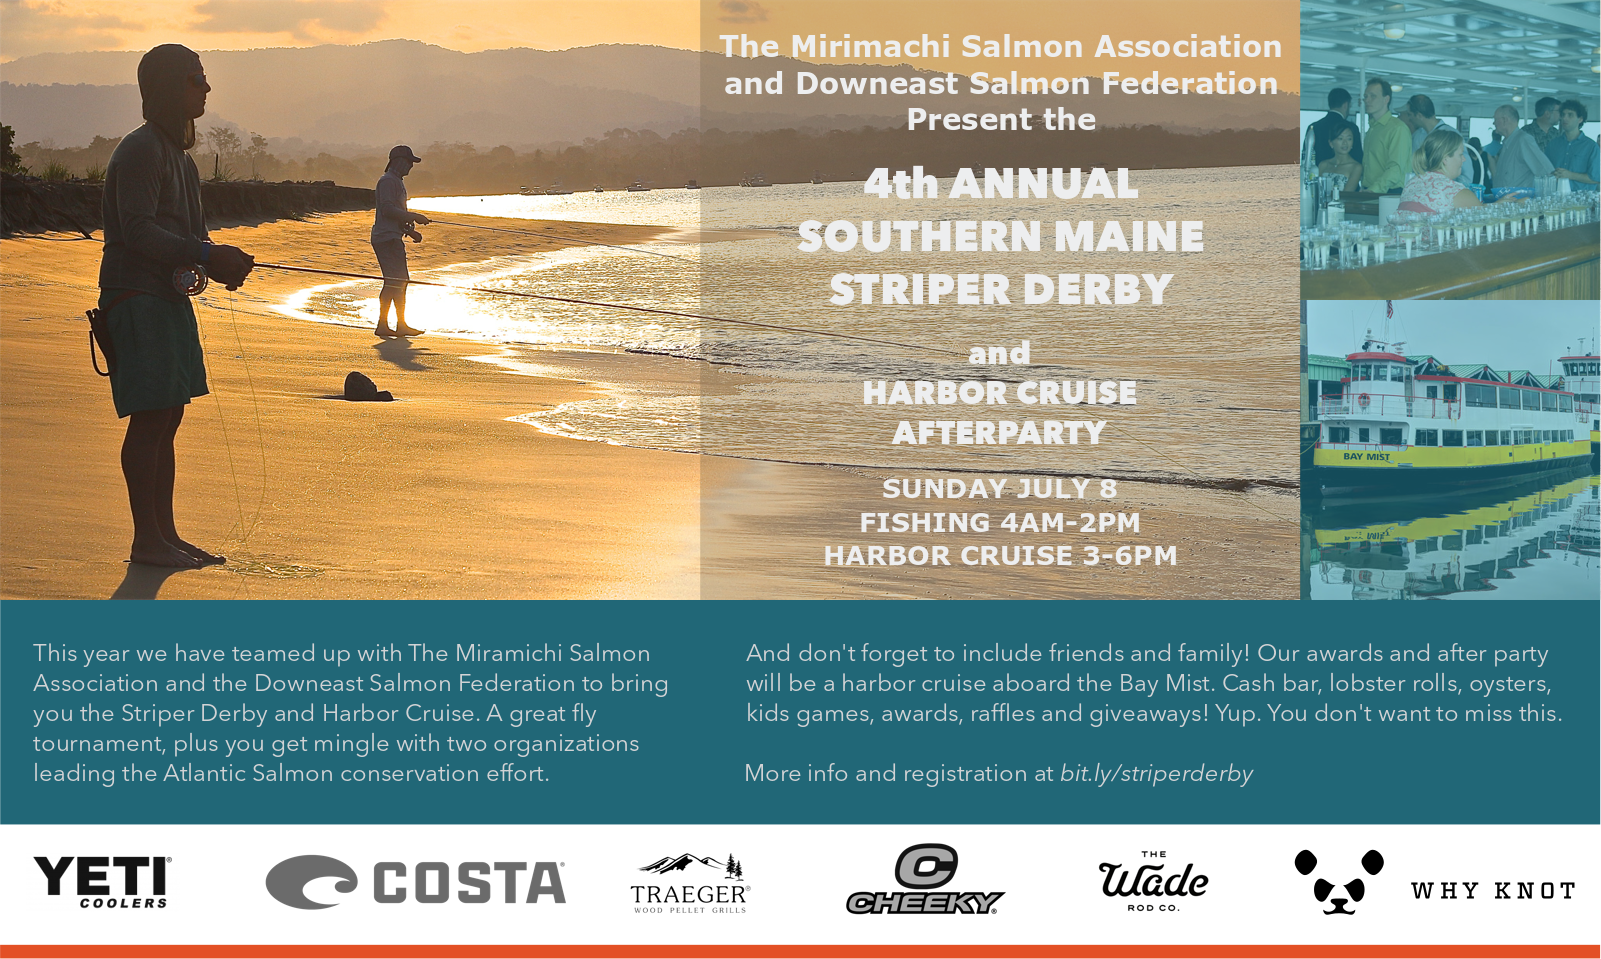 4th Annual Why Knot Fishing Southern Maine Striper Derby and